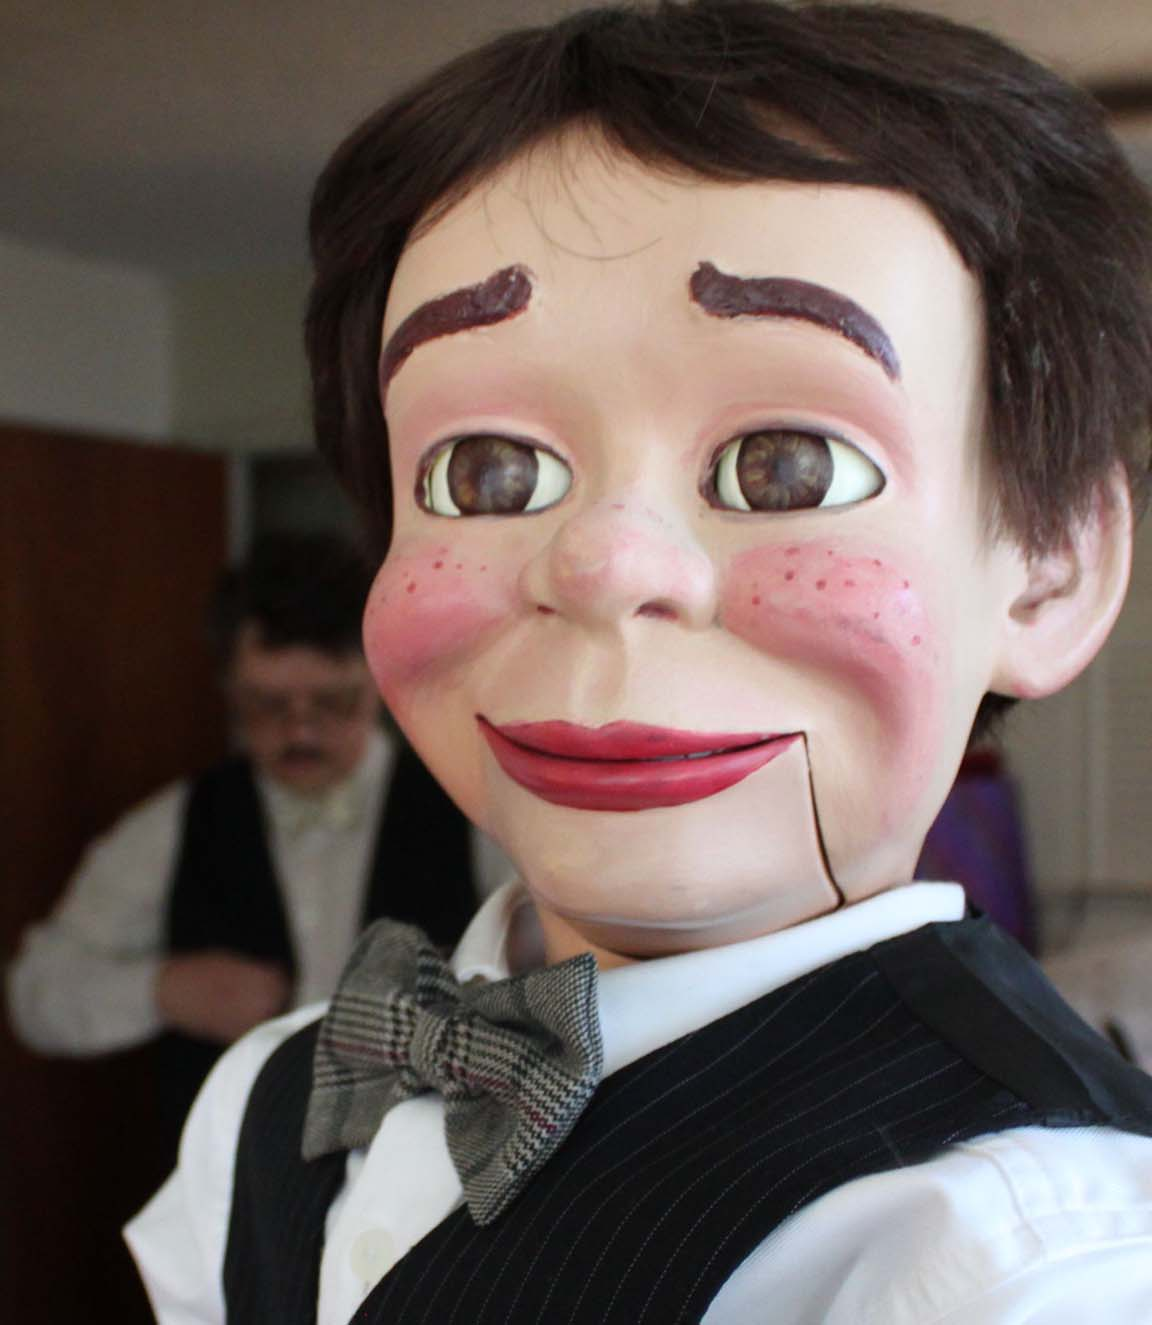 Ventriloquist David Pitts and his home built puppet Henry Little prepare for a performance of their neo-vaudeville magic and ventriloquism act.